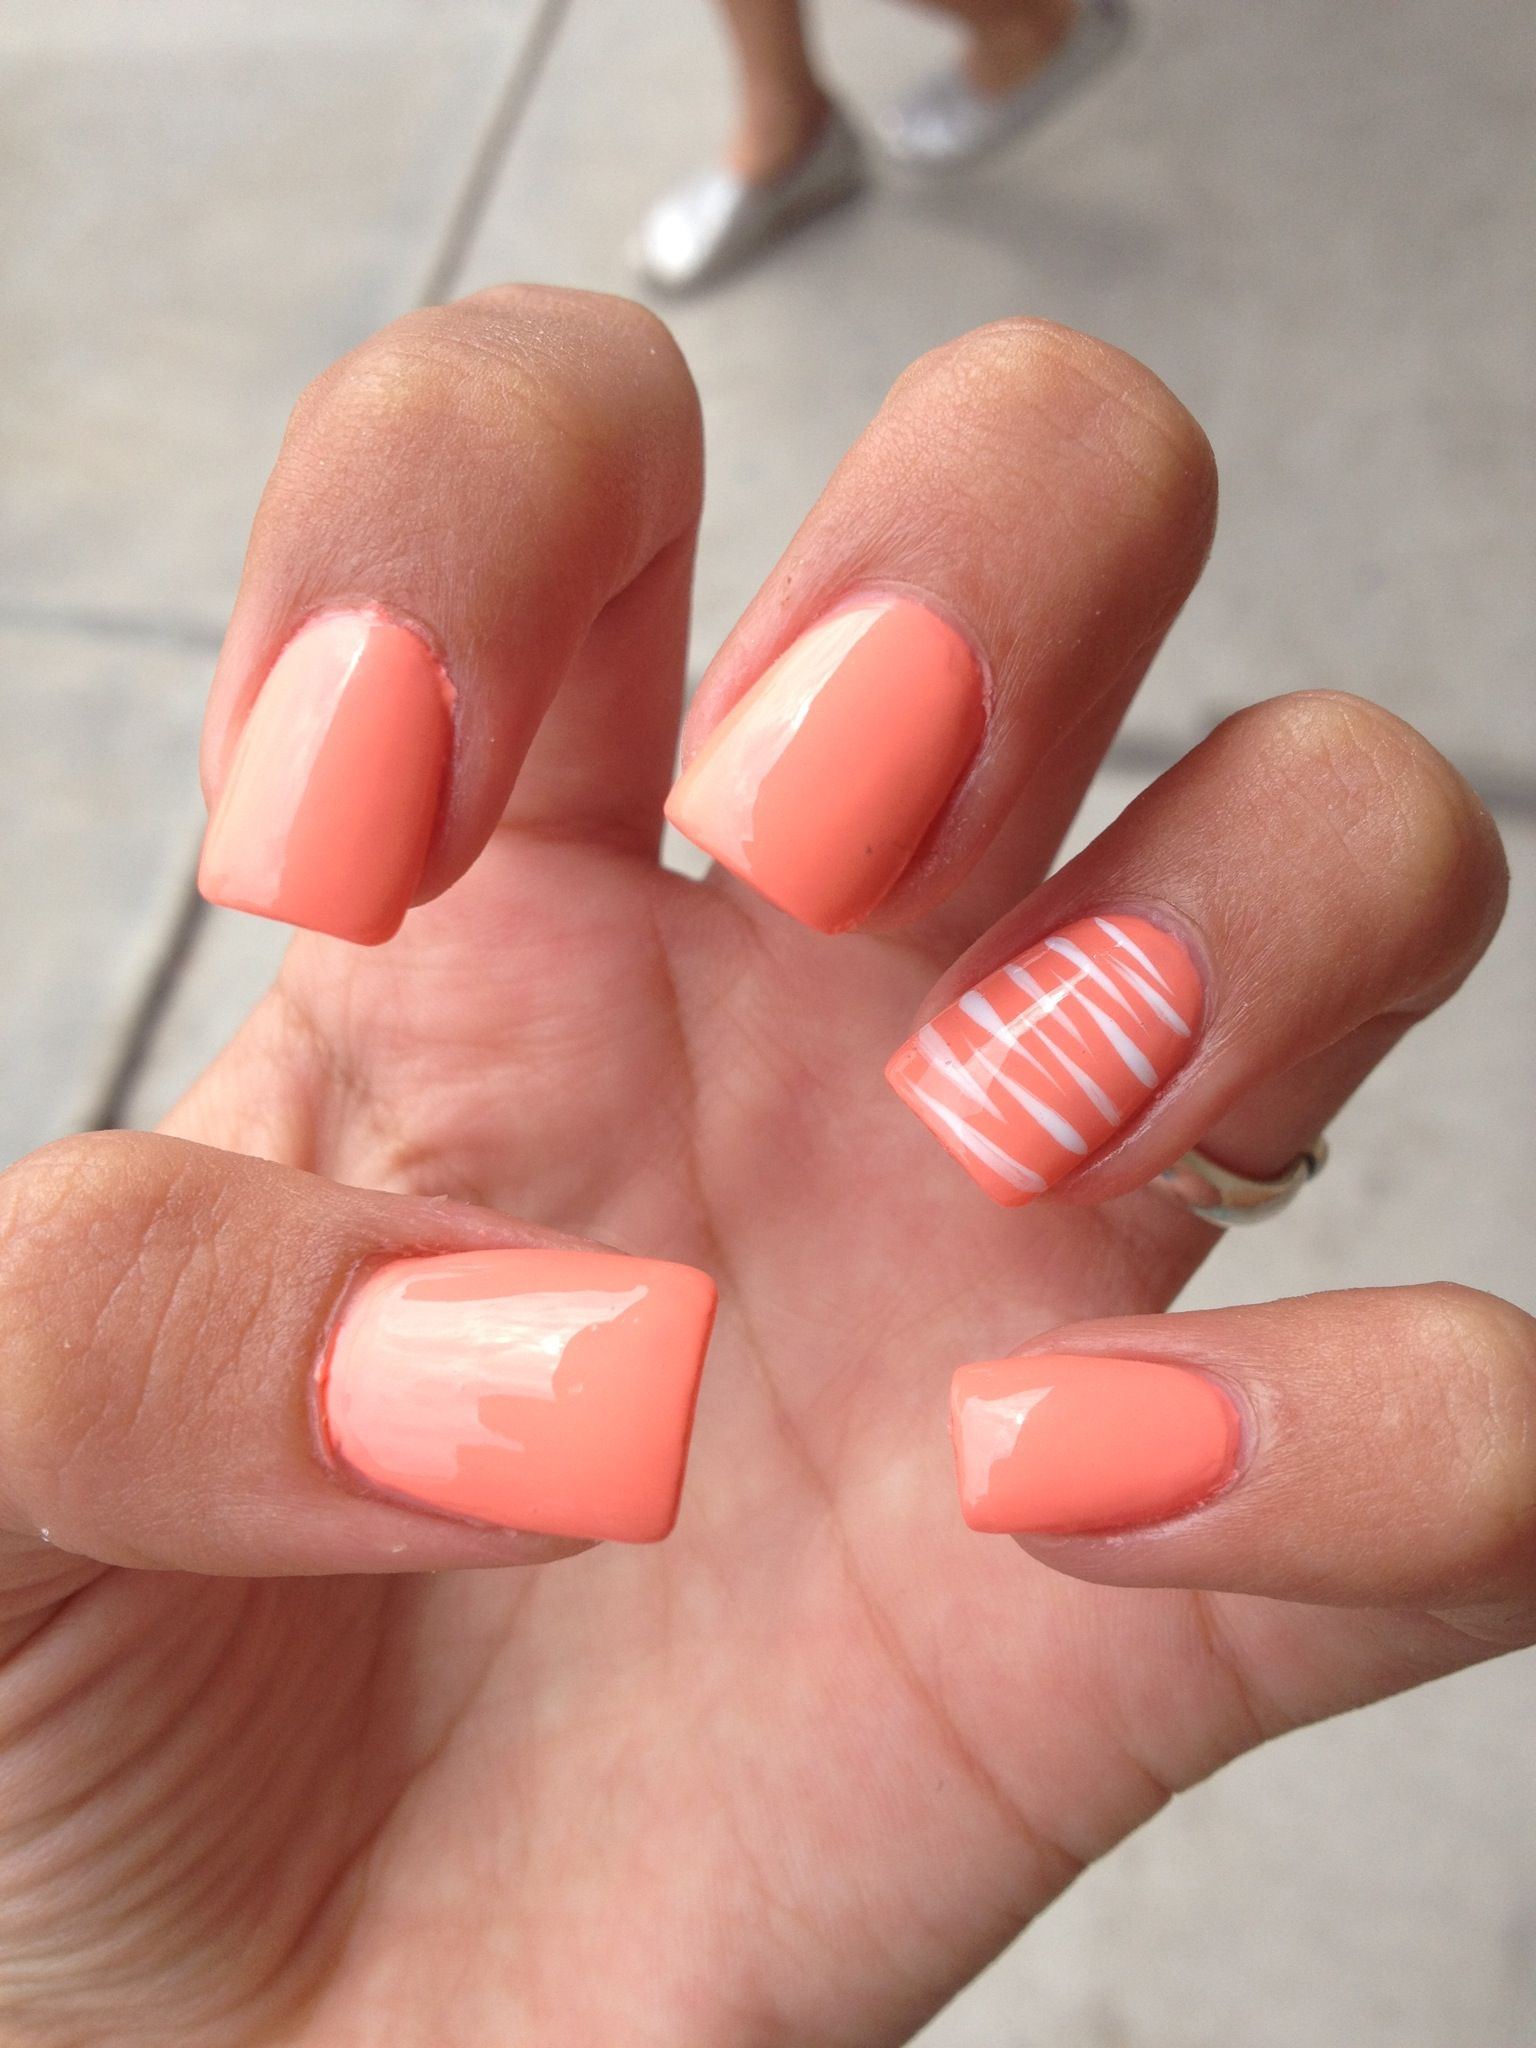 Pretty Nail Art Design: Paws / Claws & Tips For Flaws